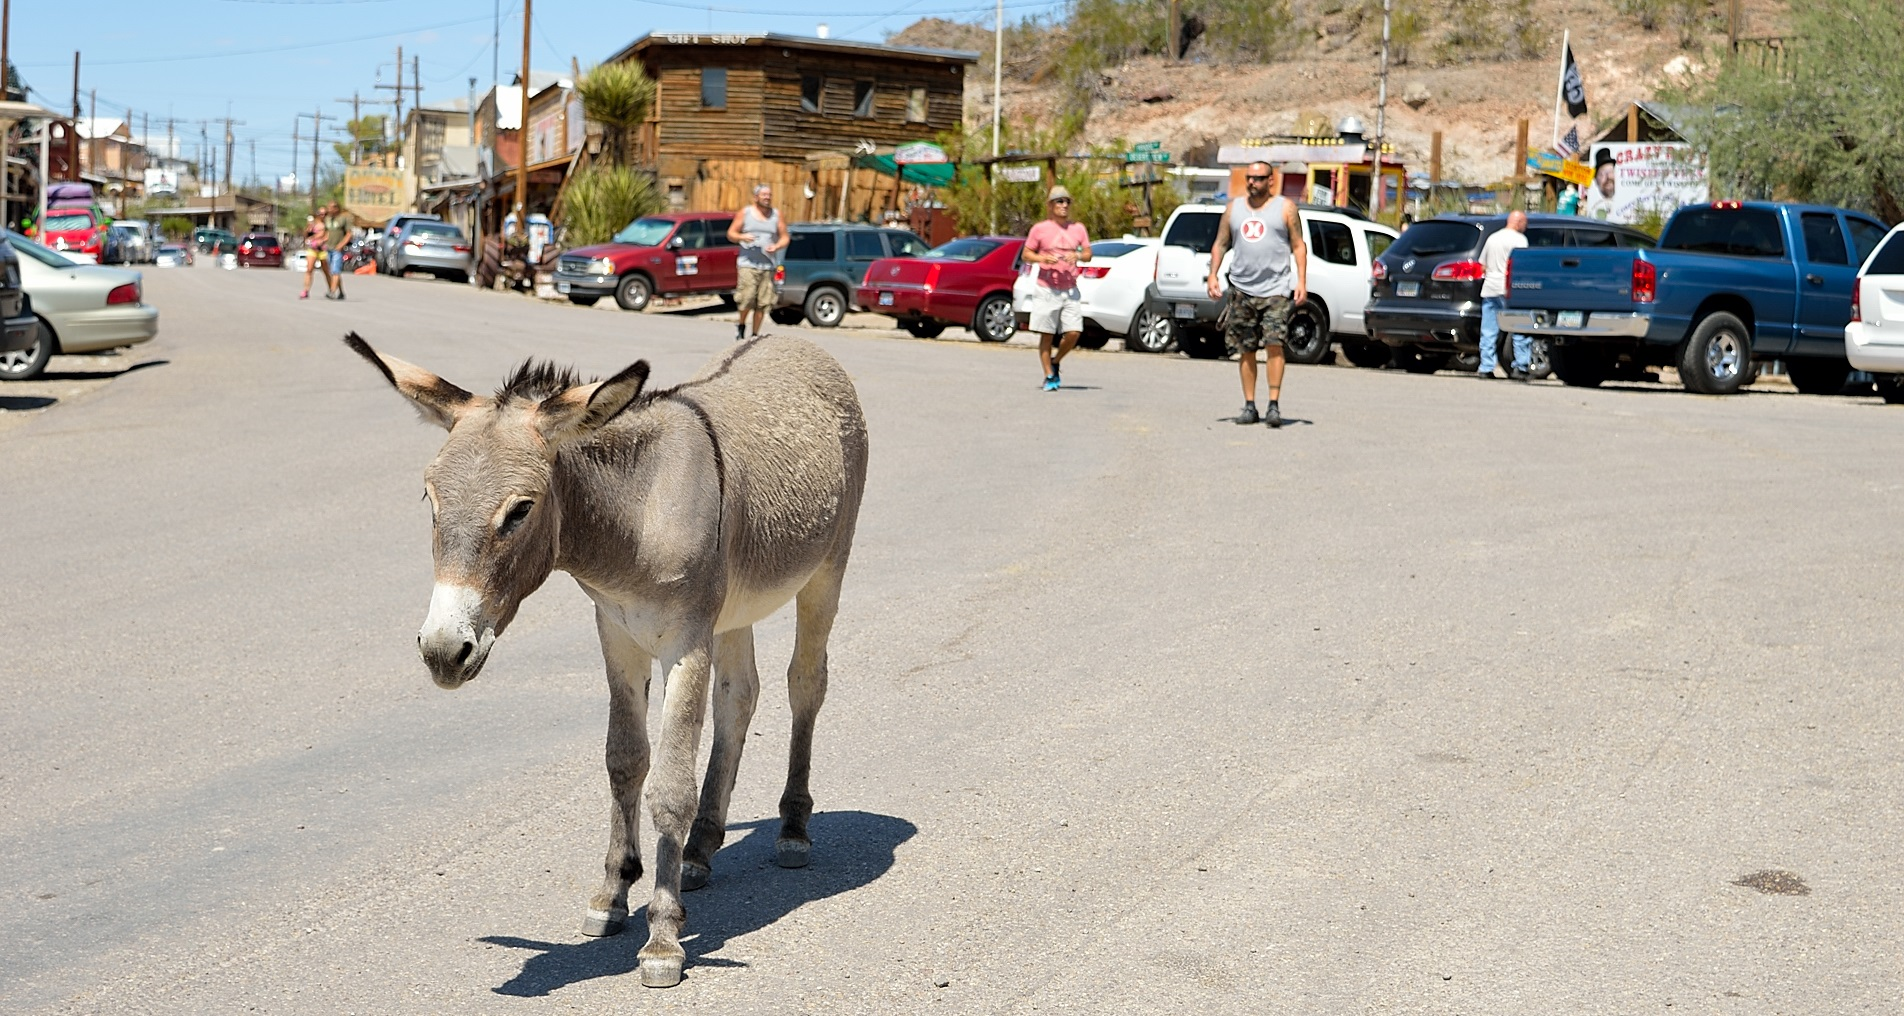 Oatman, Arizona. A place abandoned by people and inhabited by wild donkeys only.